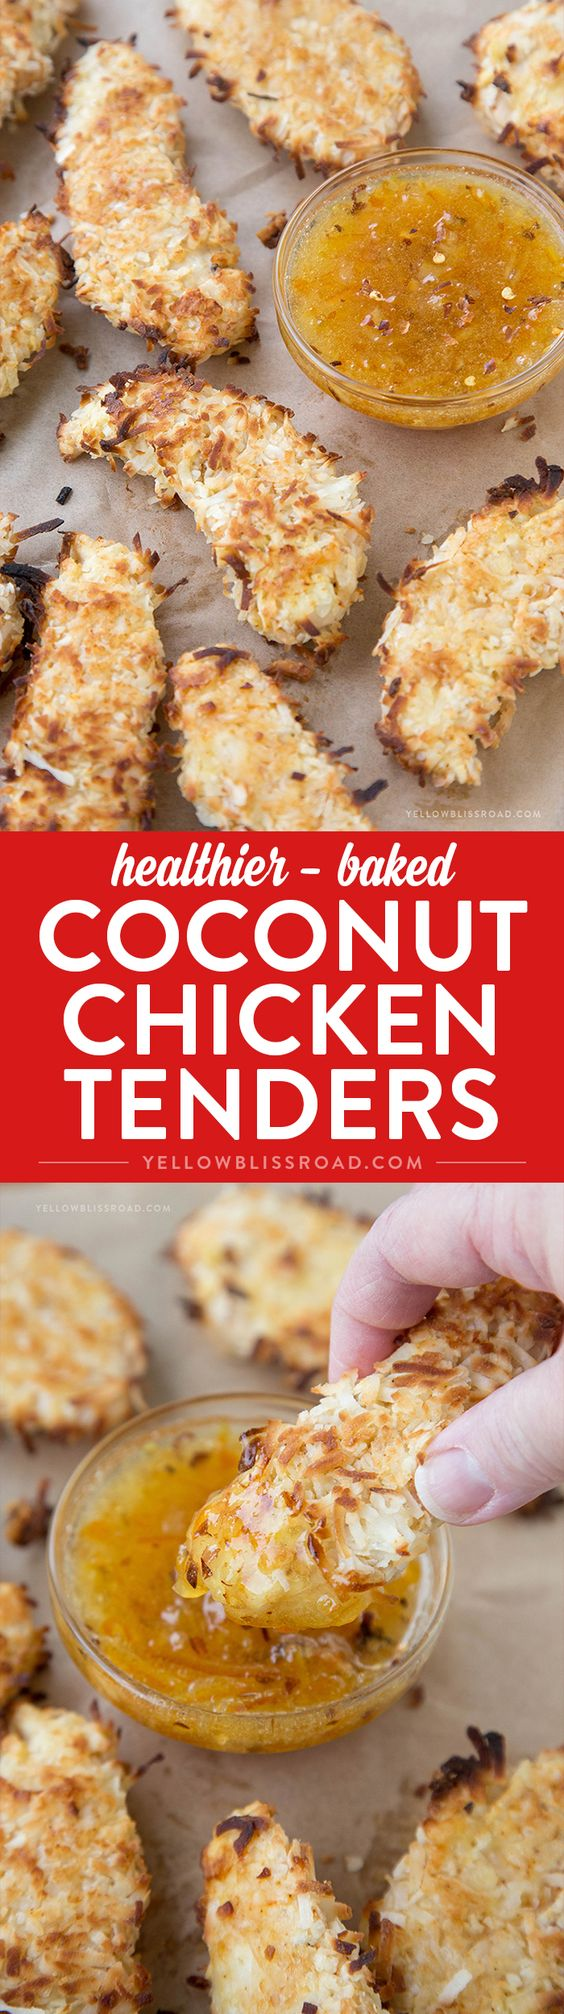 Coconut Chicken Tenders | Recipe | Coconut, Coconut ...